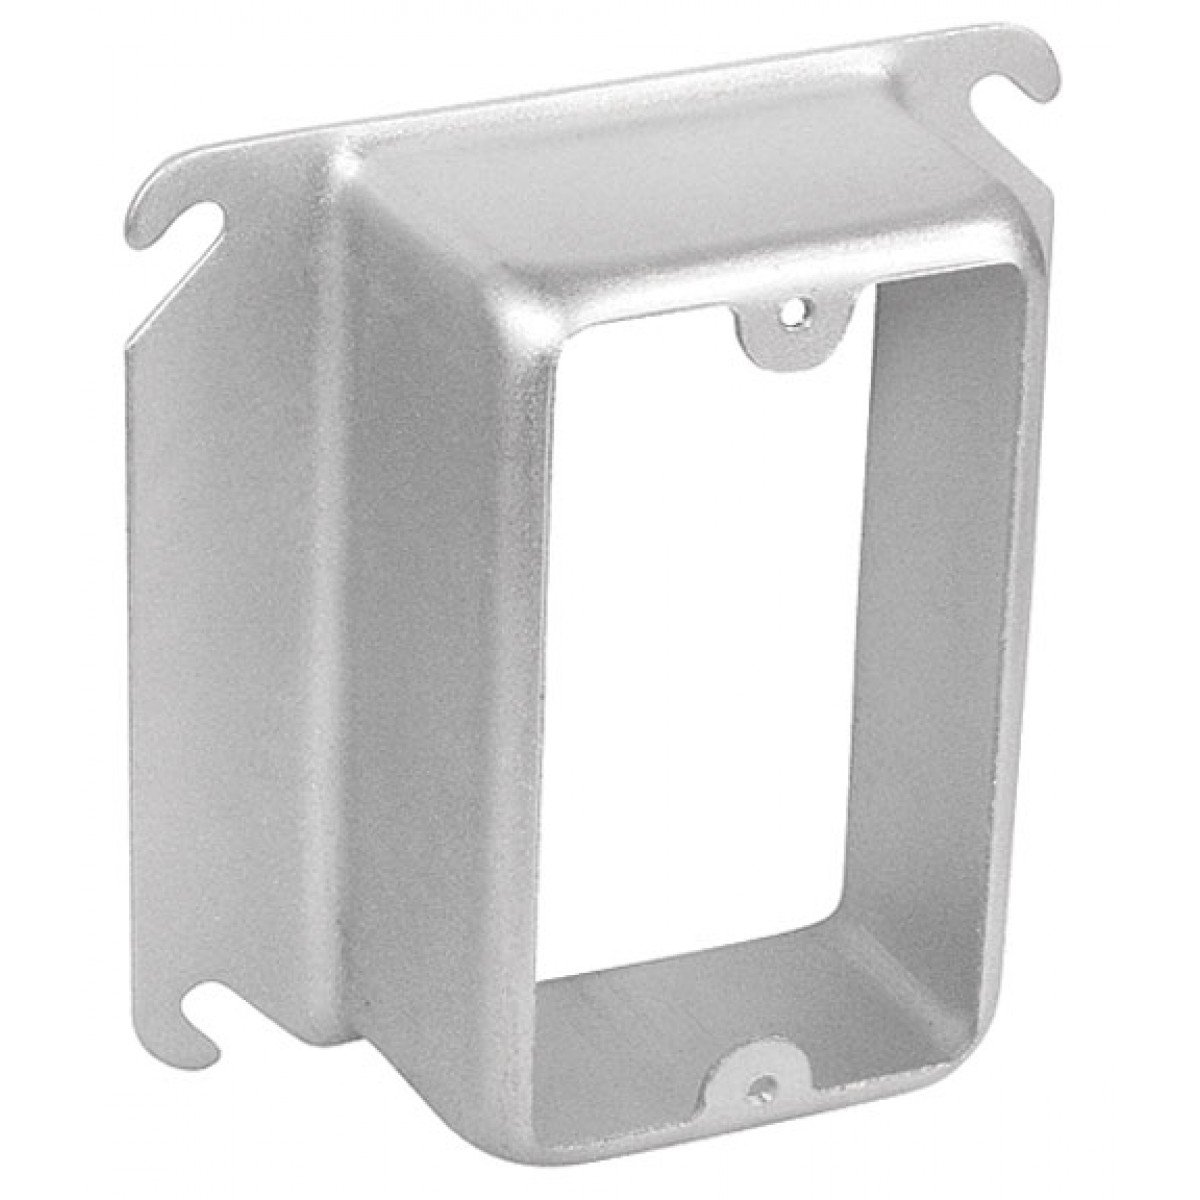 2 Pcs, Steel 4'' Square One Gang Device Ring, 1-1/2 In. Raised Used w/4In Square Boxes to Mount Switches, Receptacles & Devices